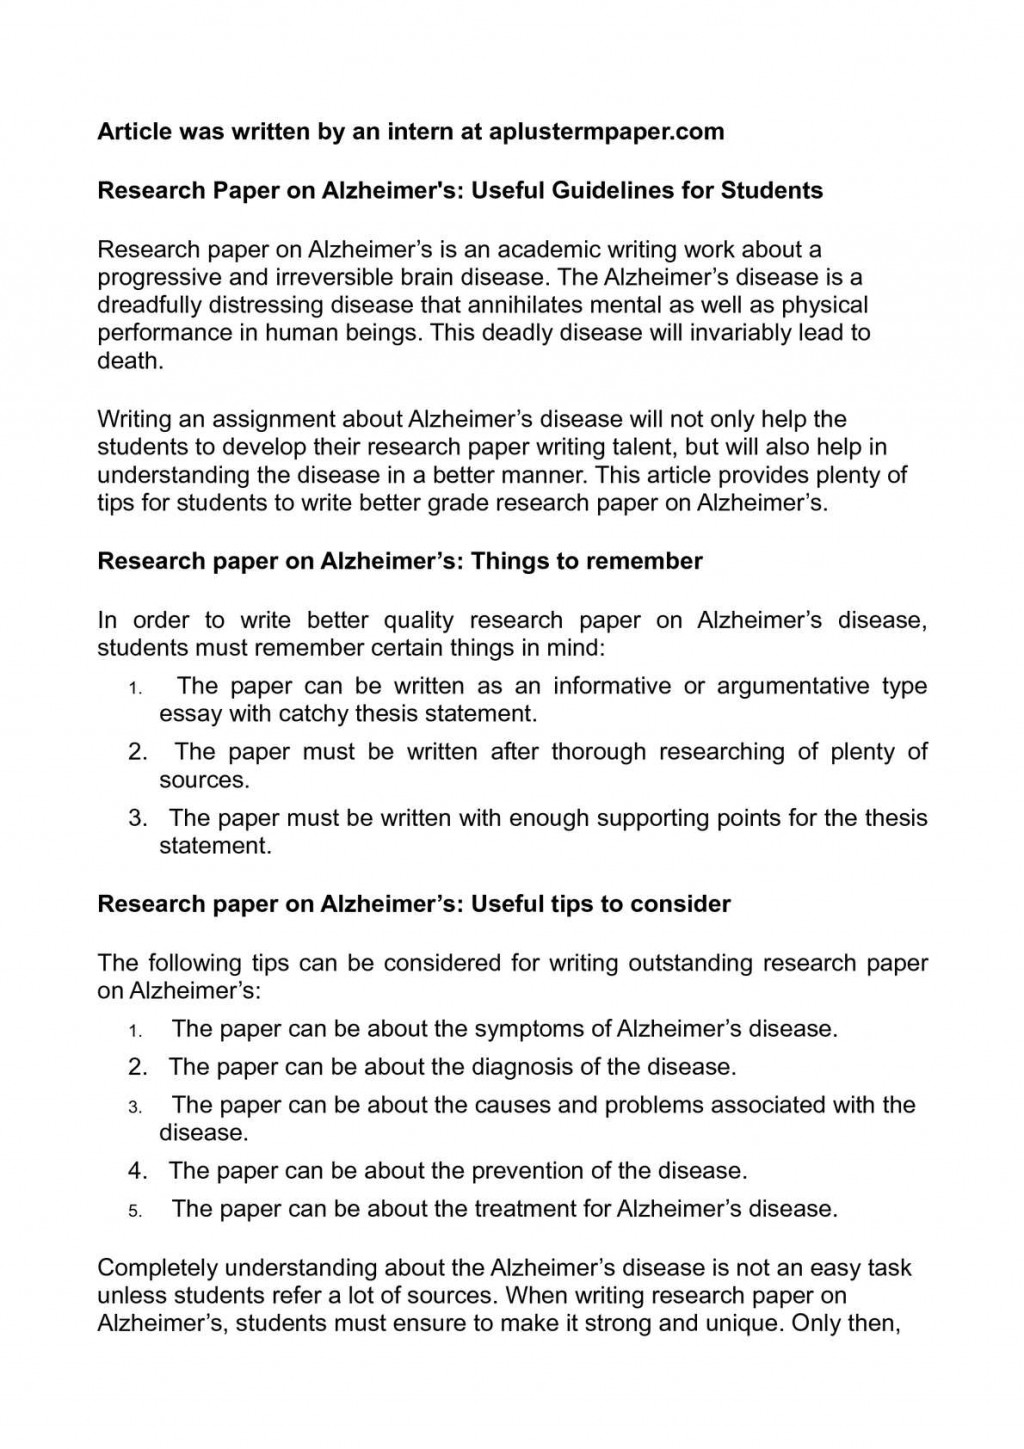 007 How To Make Research Paper Incredible A Interesting Thesis Flow Large